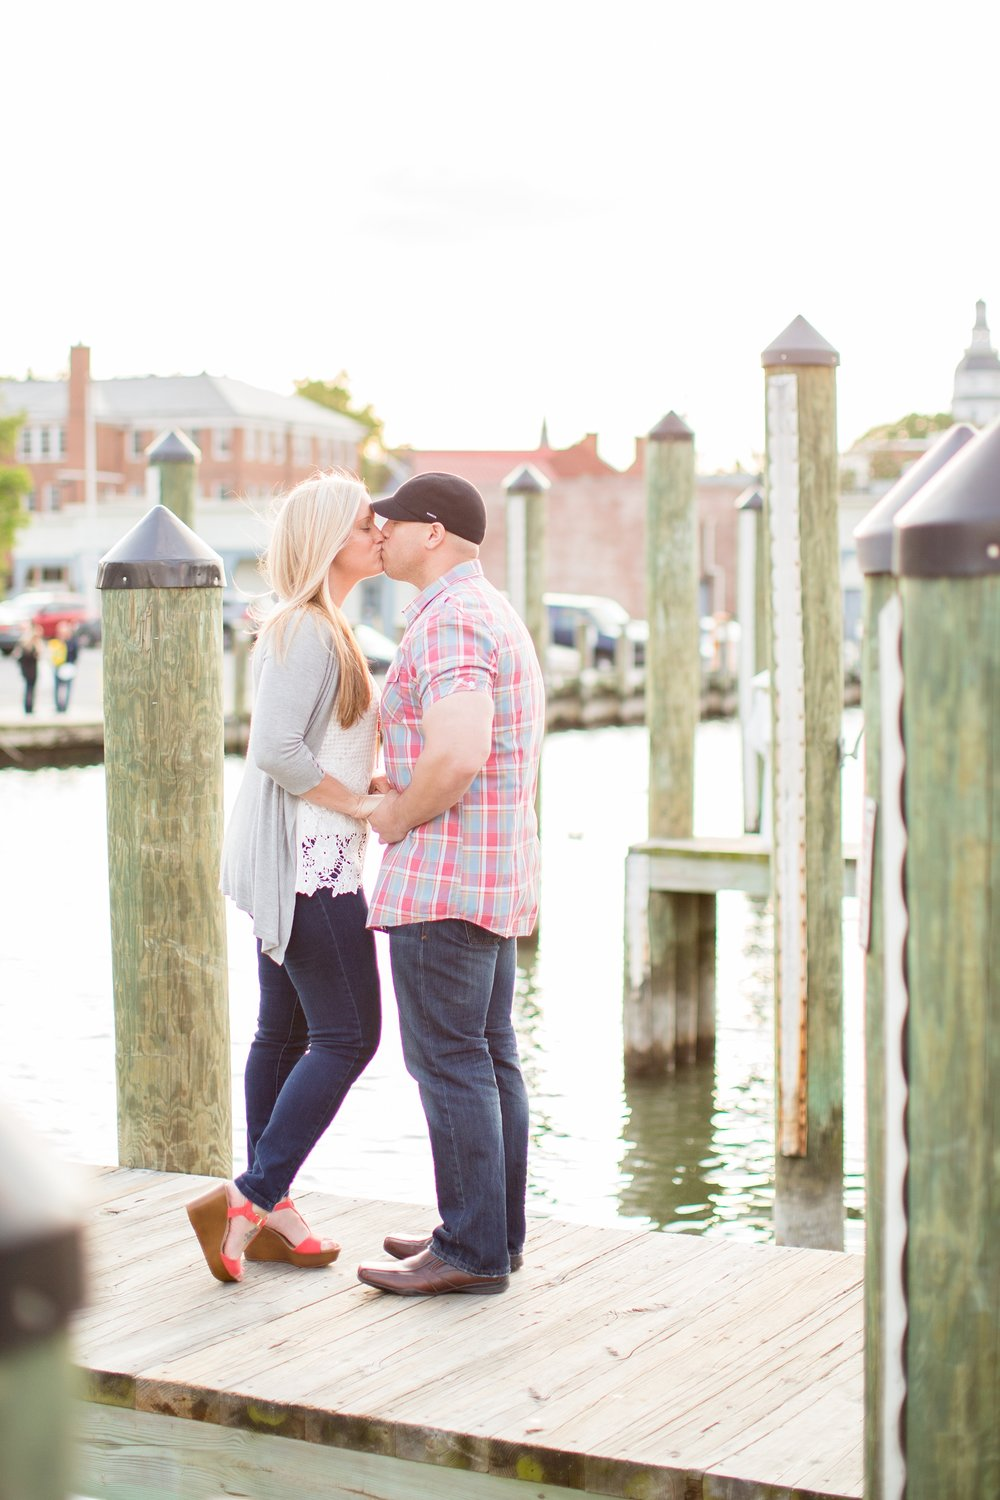 Shauna & Keith Engagement-140_anna grace photography maryland engagement photographer downtown annapolis photo.jpg